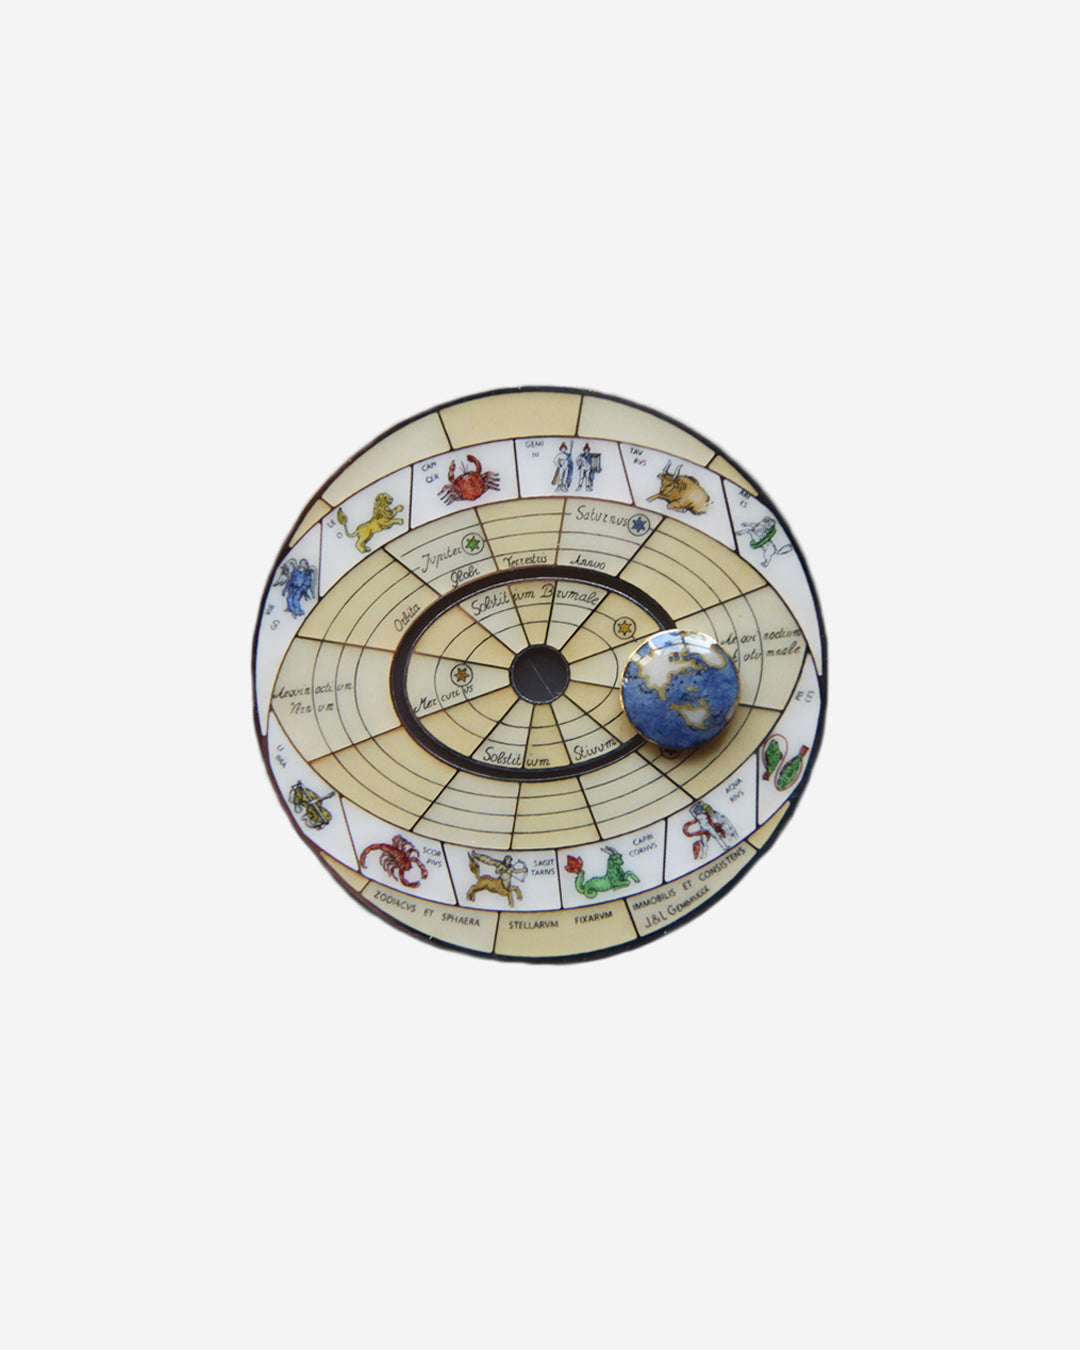 Jean Genbrugge Copernicus dial in The Art of Enamel Dials for A Collected Man London